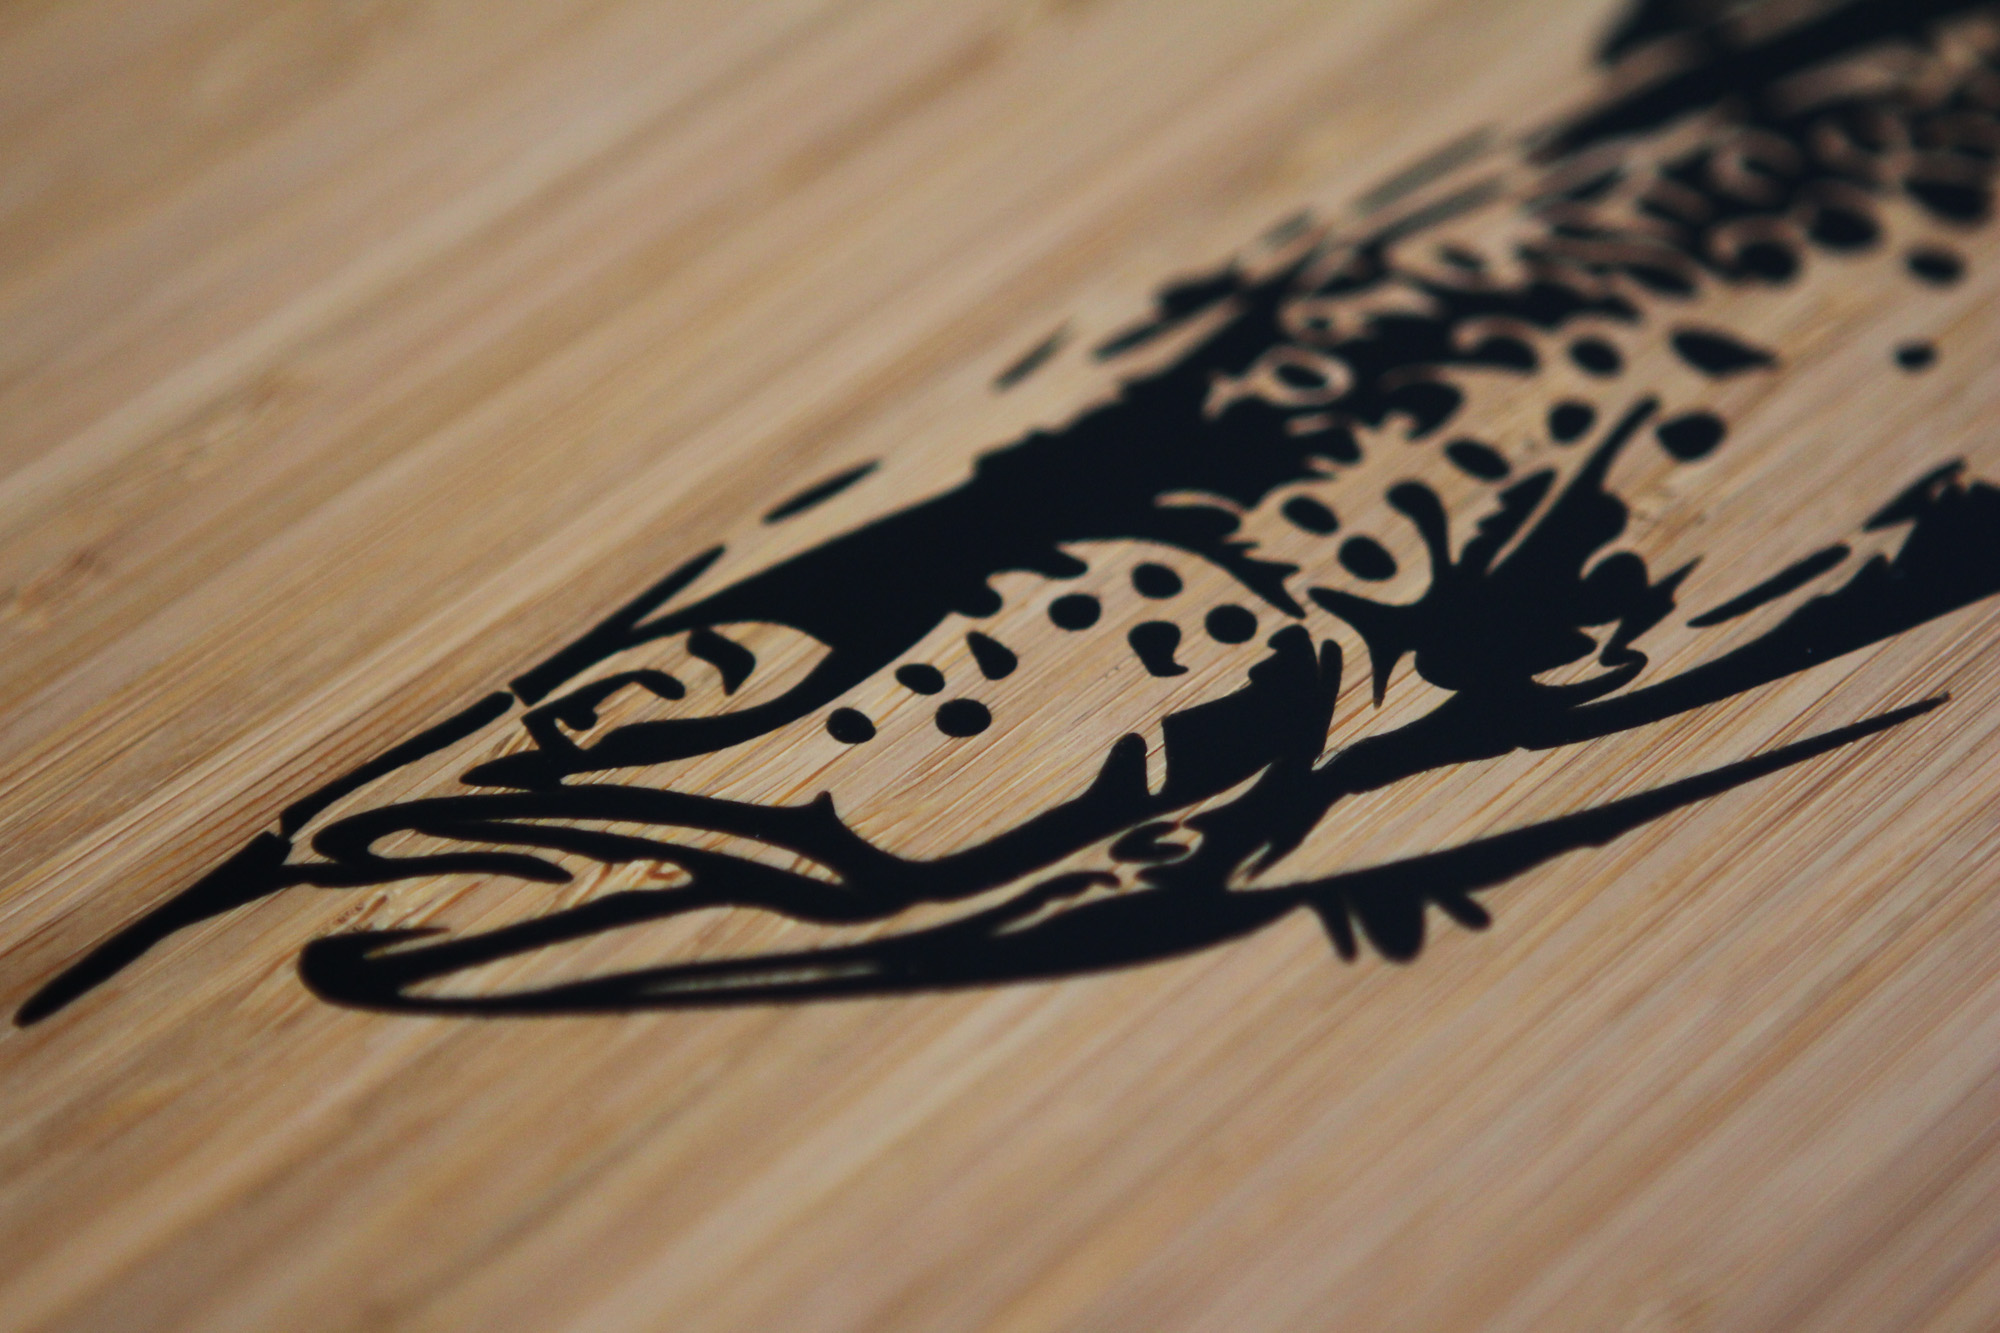 Epoxy Resin Inlay in Plywood - Projects - Inventables Community Forum